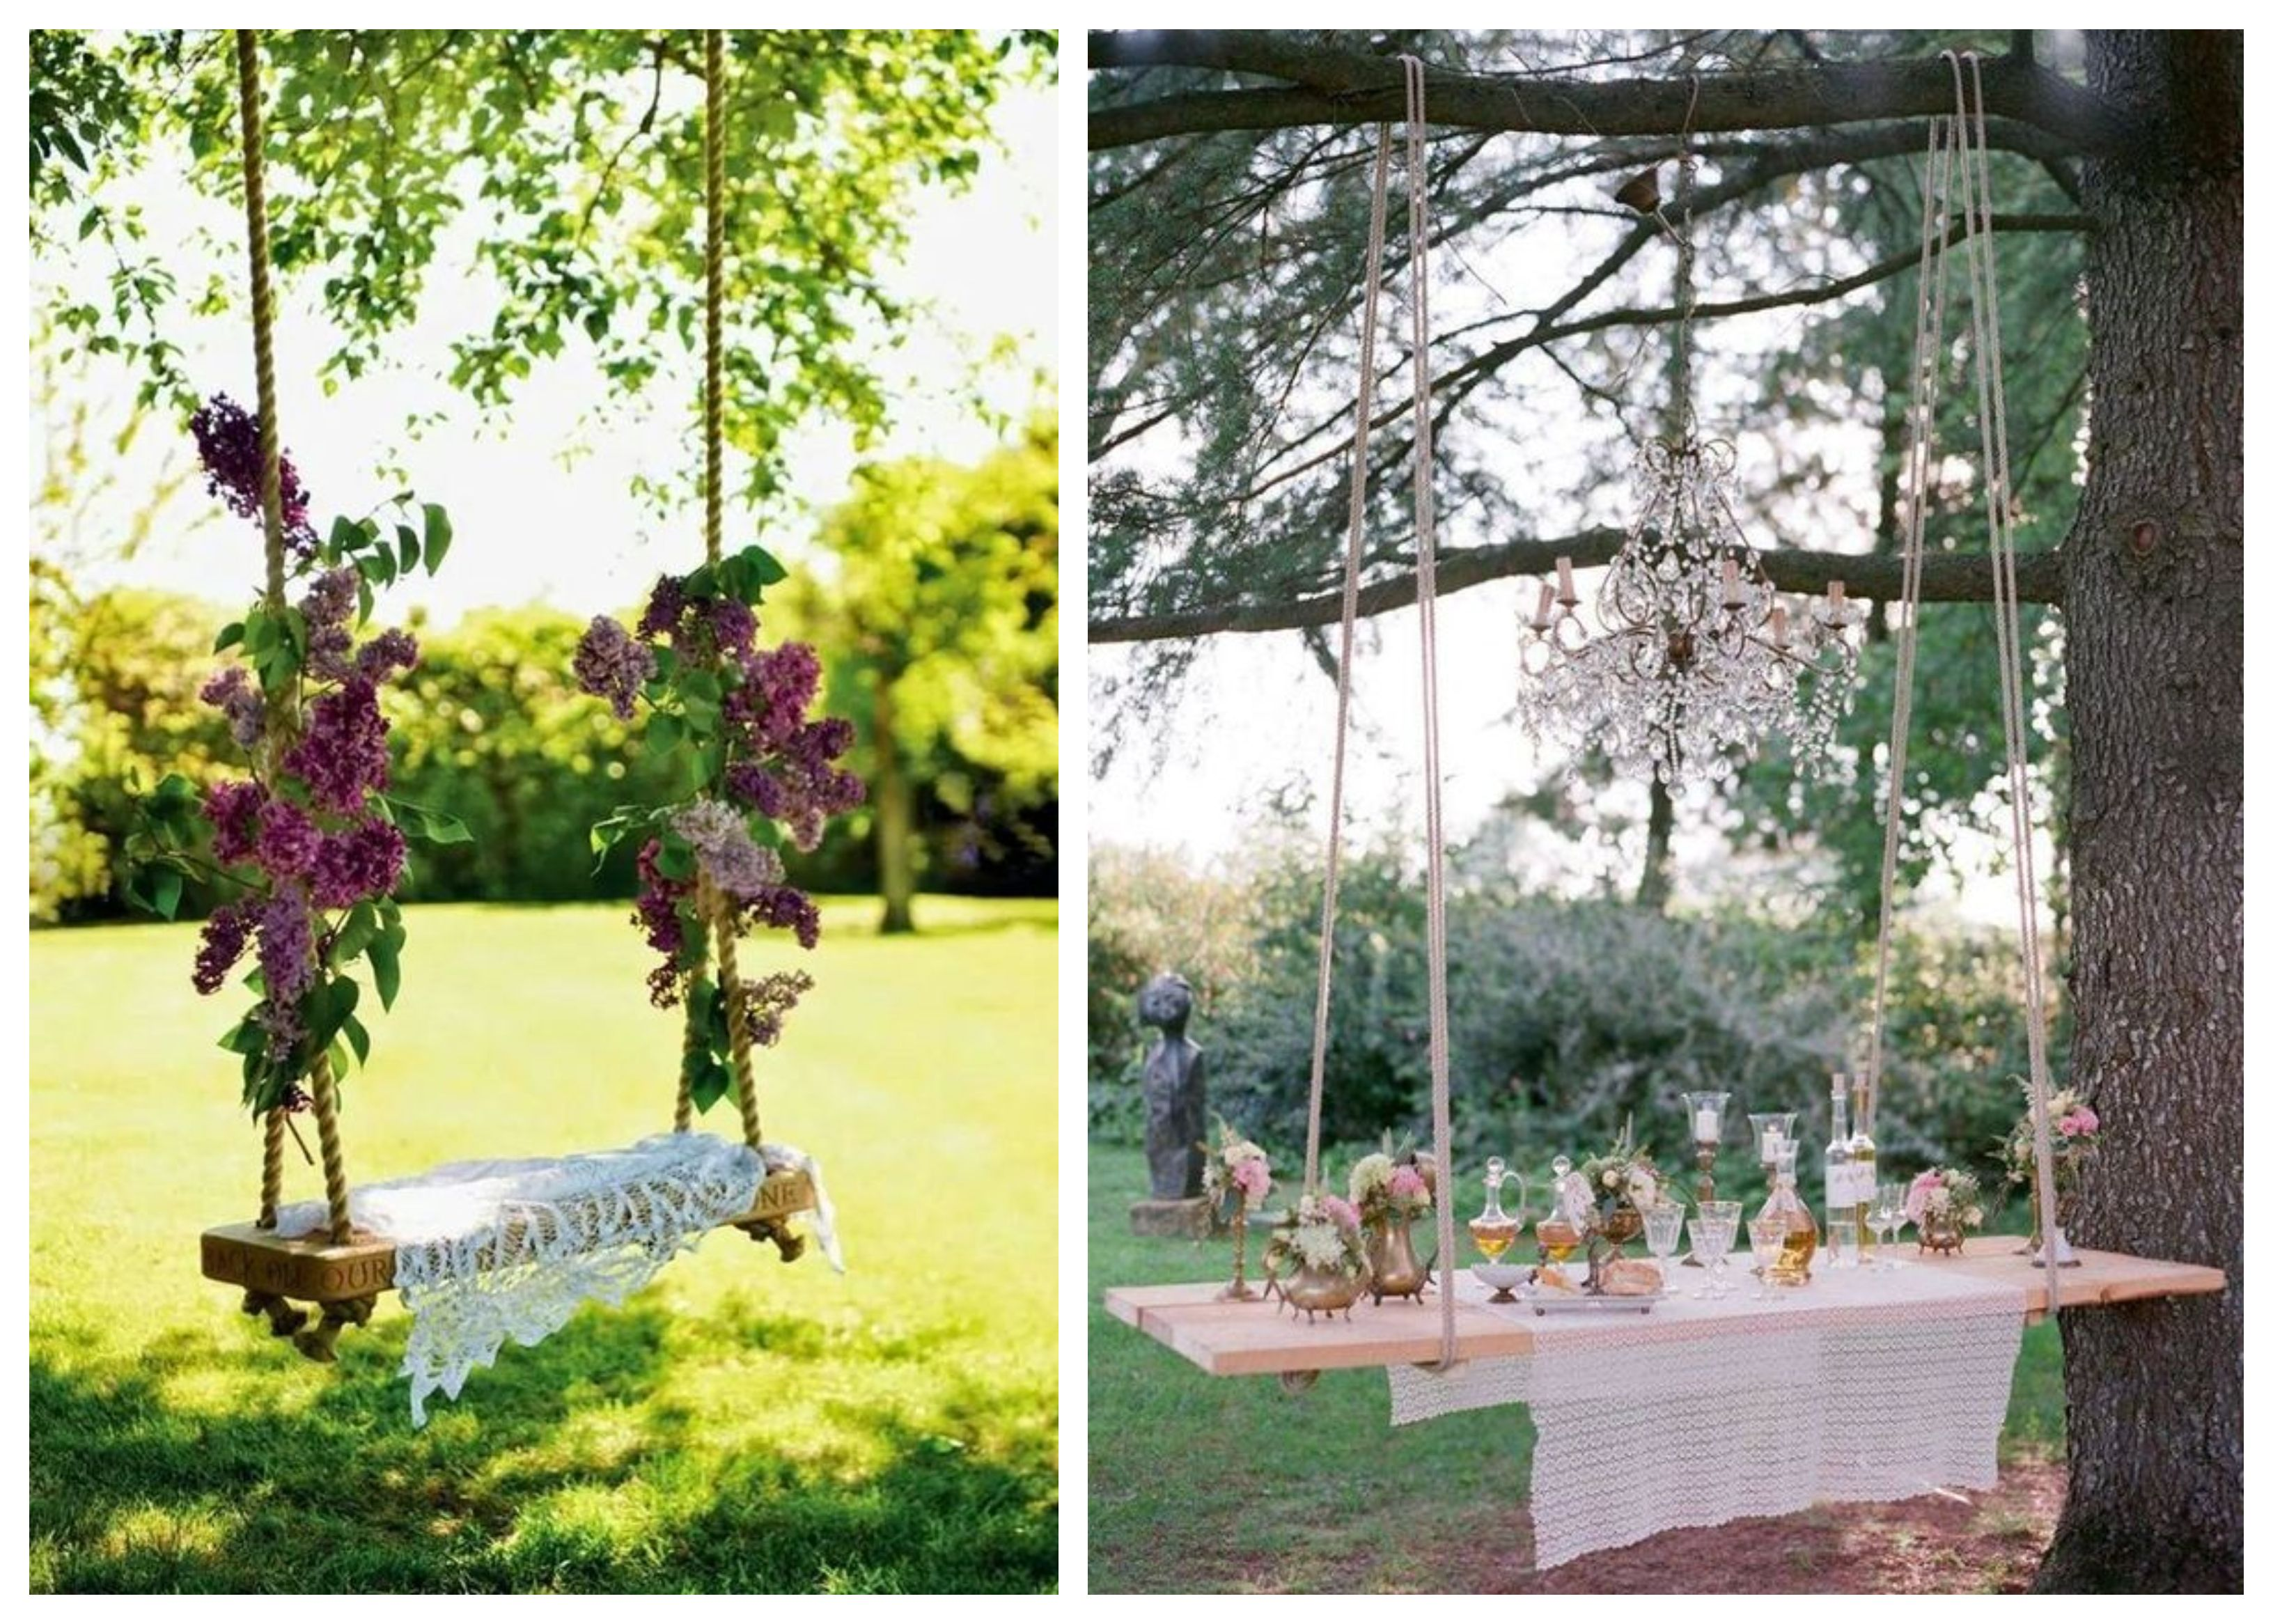 Upcycled Event Decor – Rope and Boards